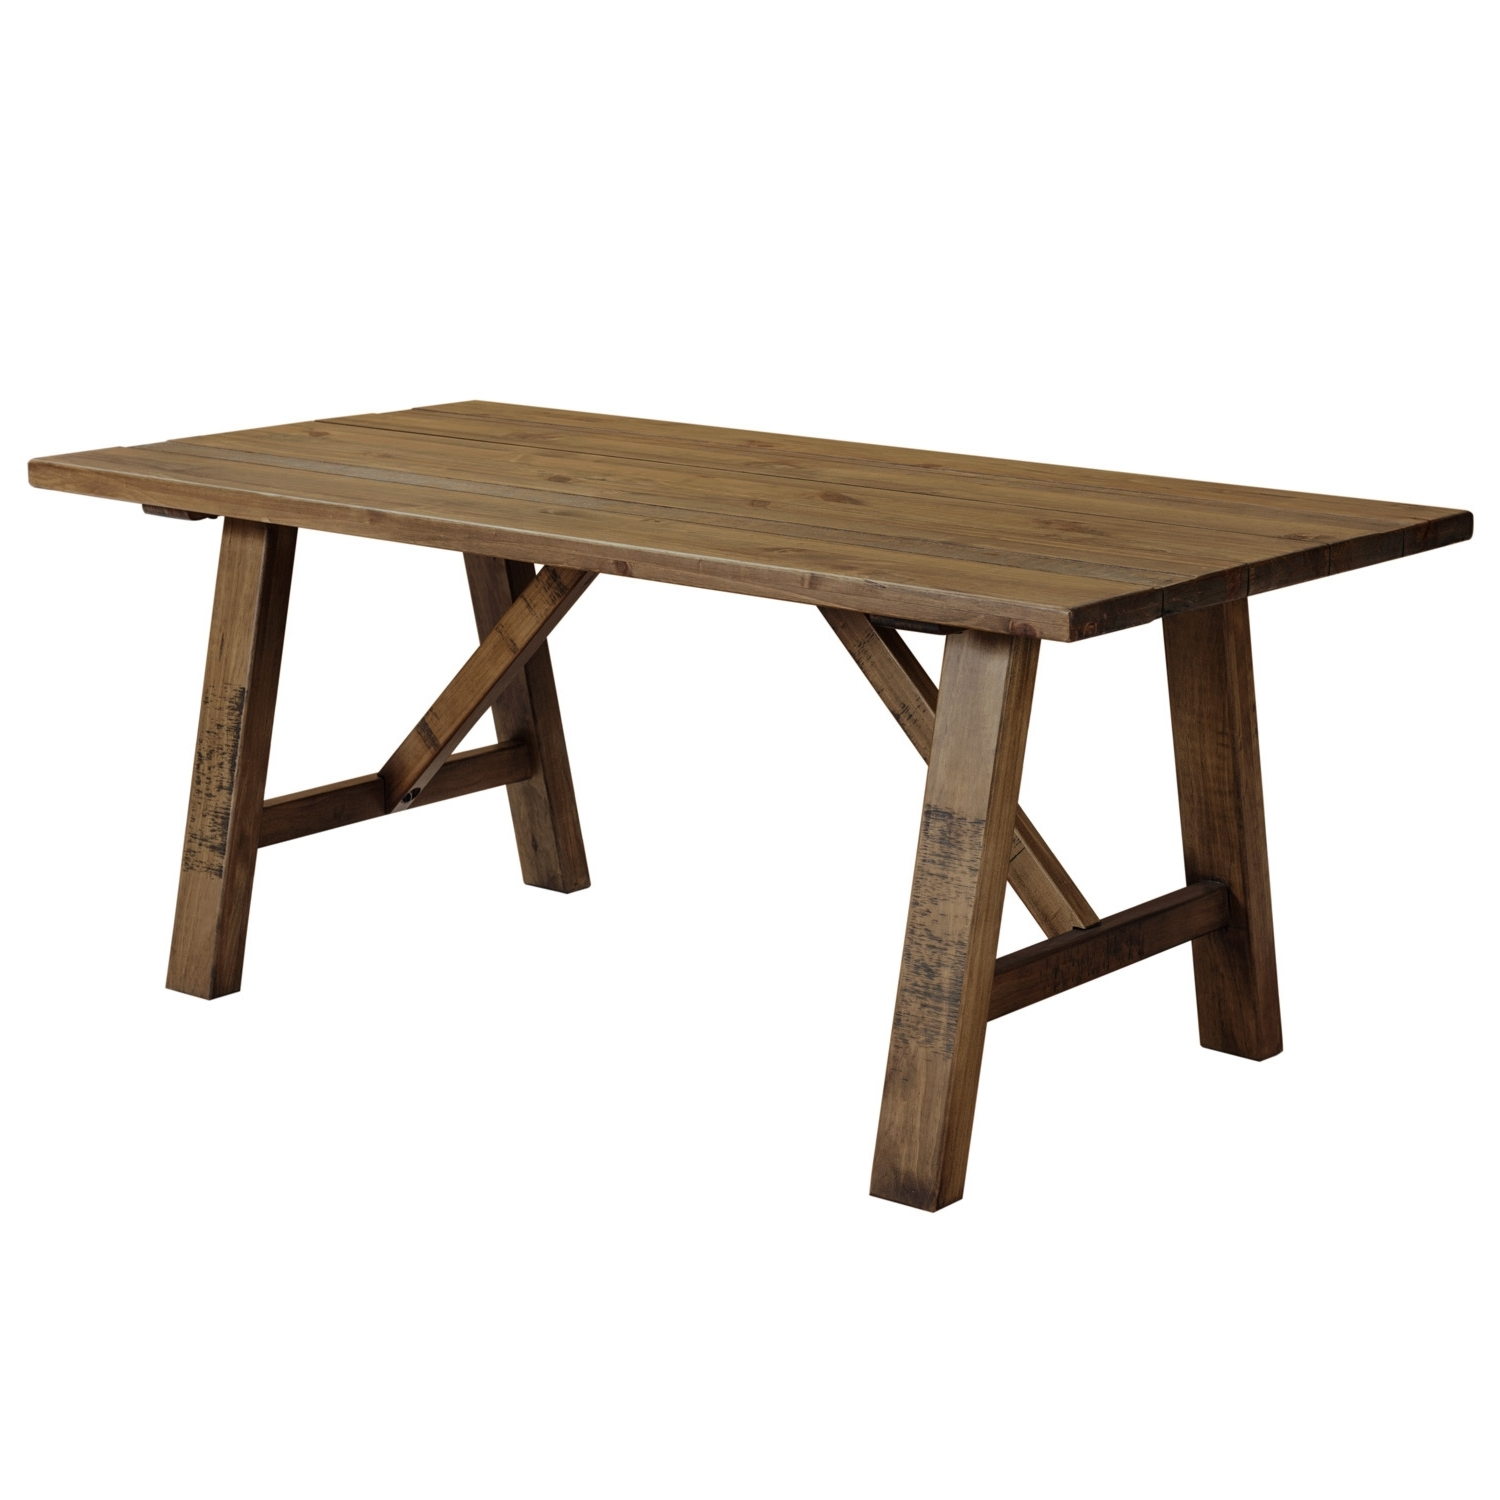 Cotswold Rustic Trestle Dining Table With Regard To Most Recent Cotswold Dining Tables (View 12 of 25)